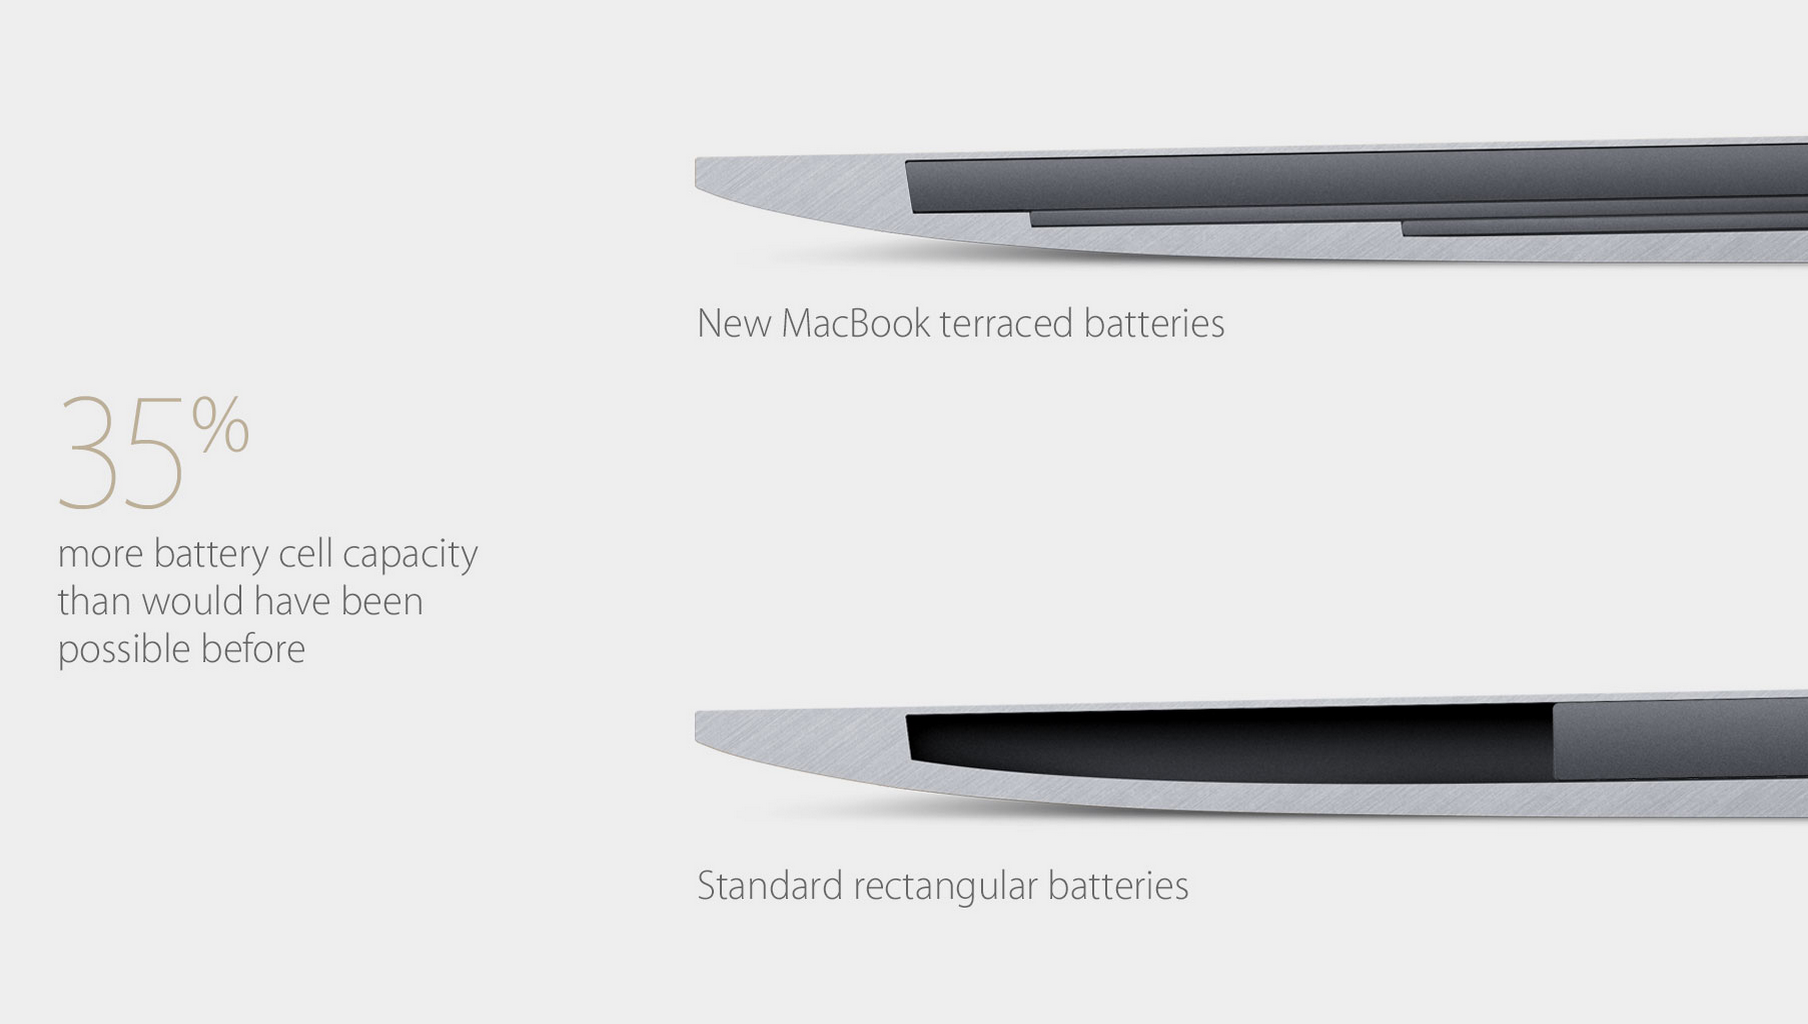 new macbook battery engineering